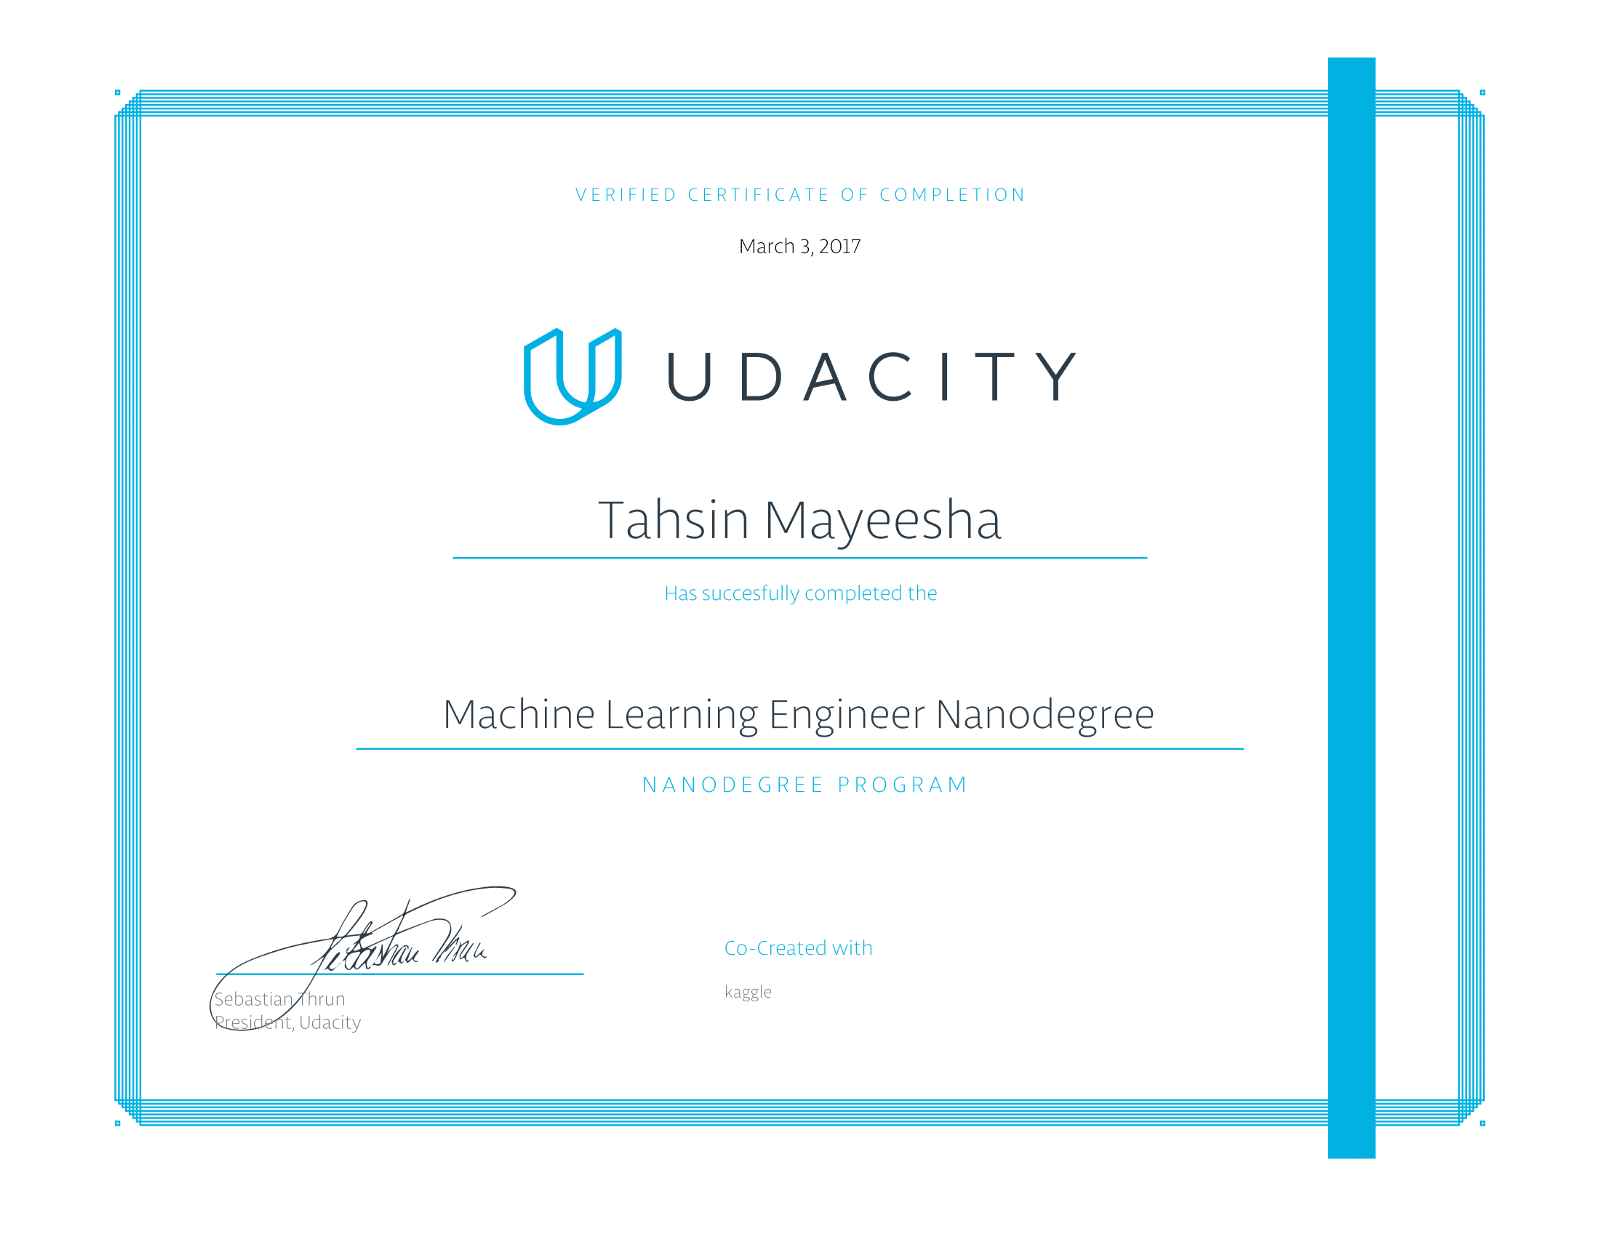 All About The Udacity Machine Learning Nanodegree Program From A